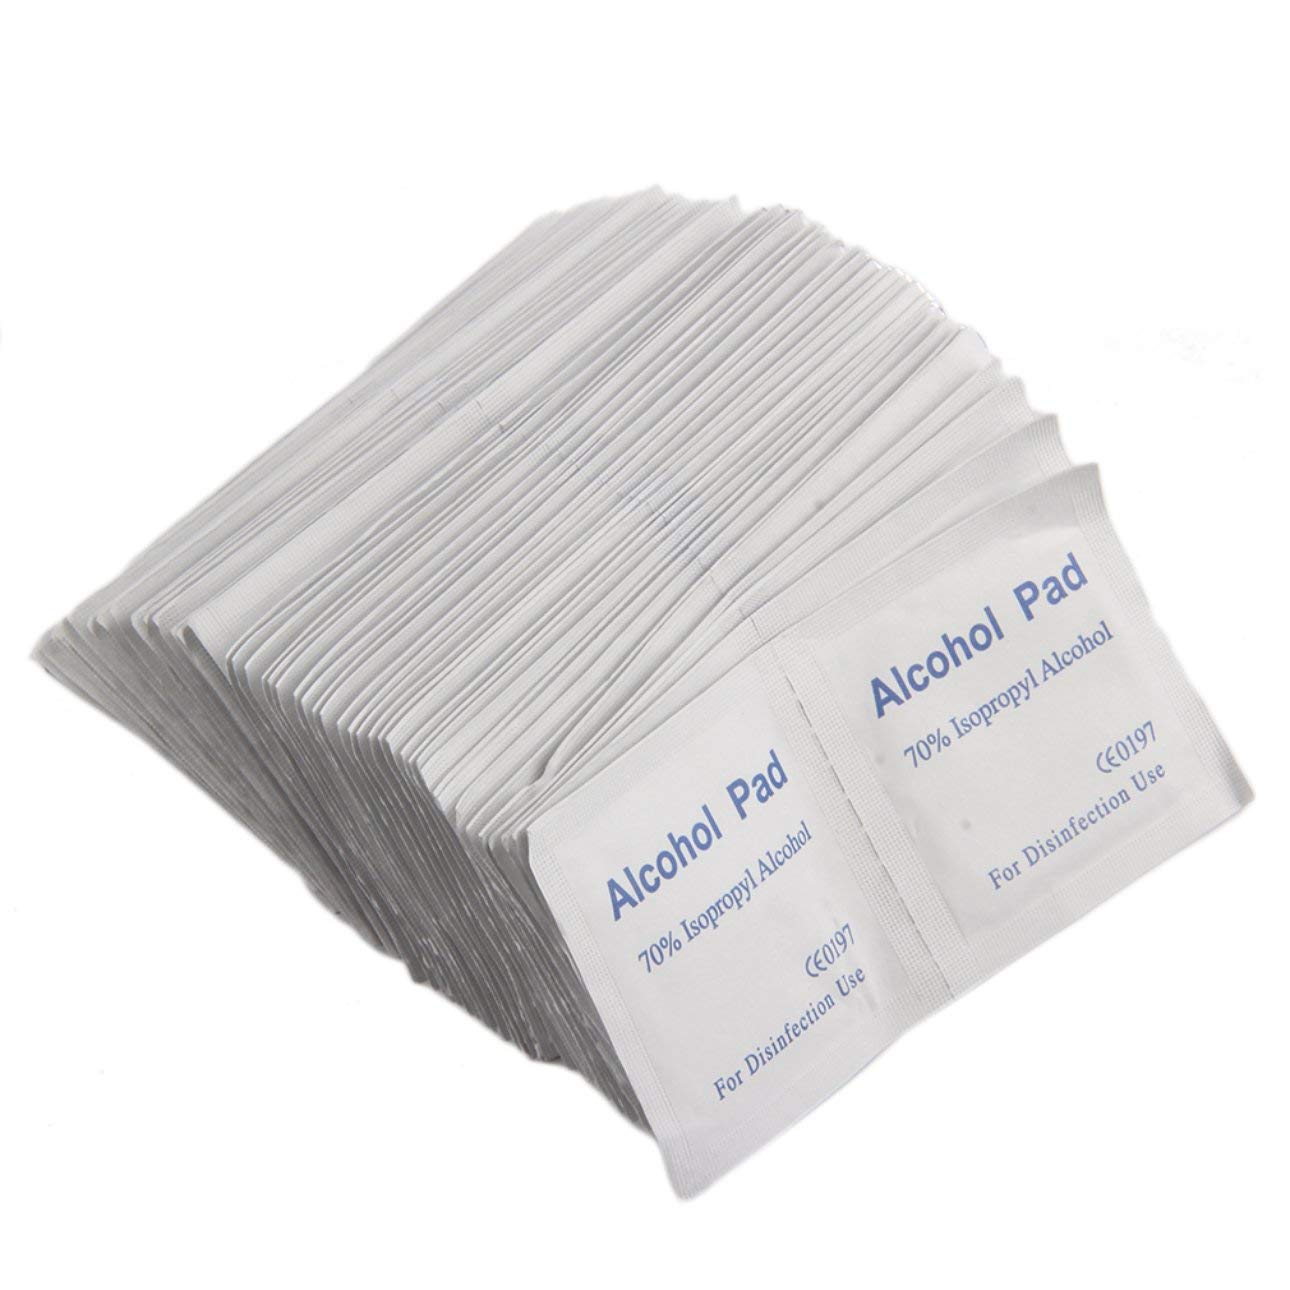 Liobaba 100PCS/Box Professional Alcohol Wipe Pad Medical Swab Sachet Antibacterial Tool Cleanser Cleanning Non-Woven Fabric Paper